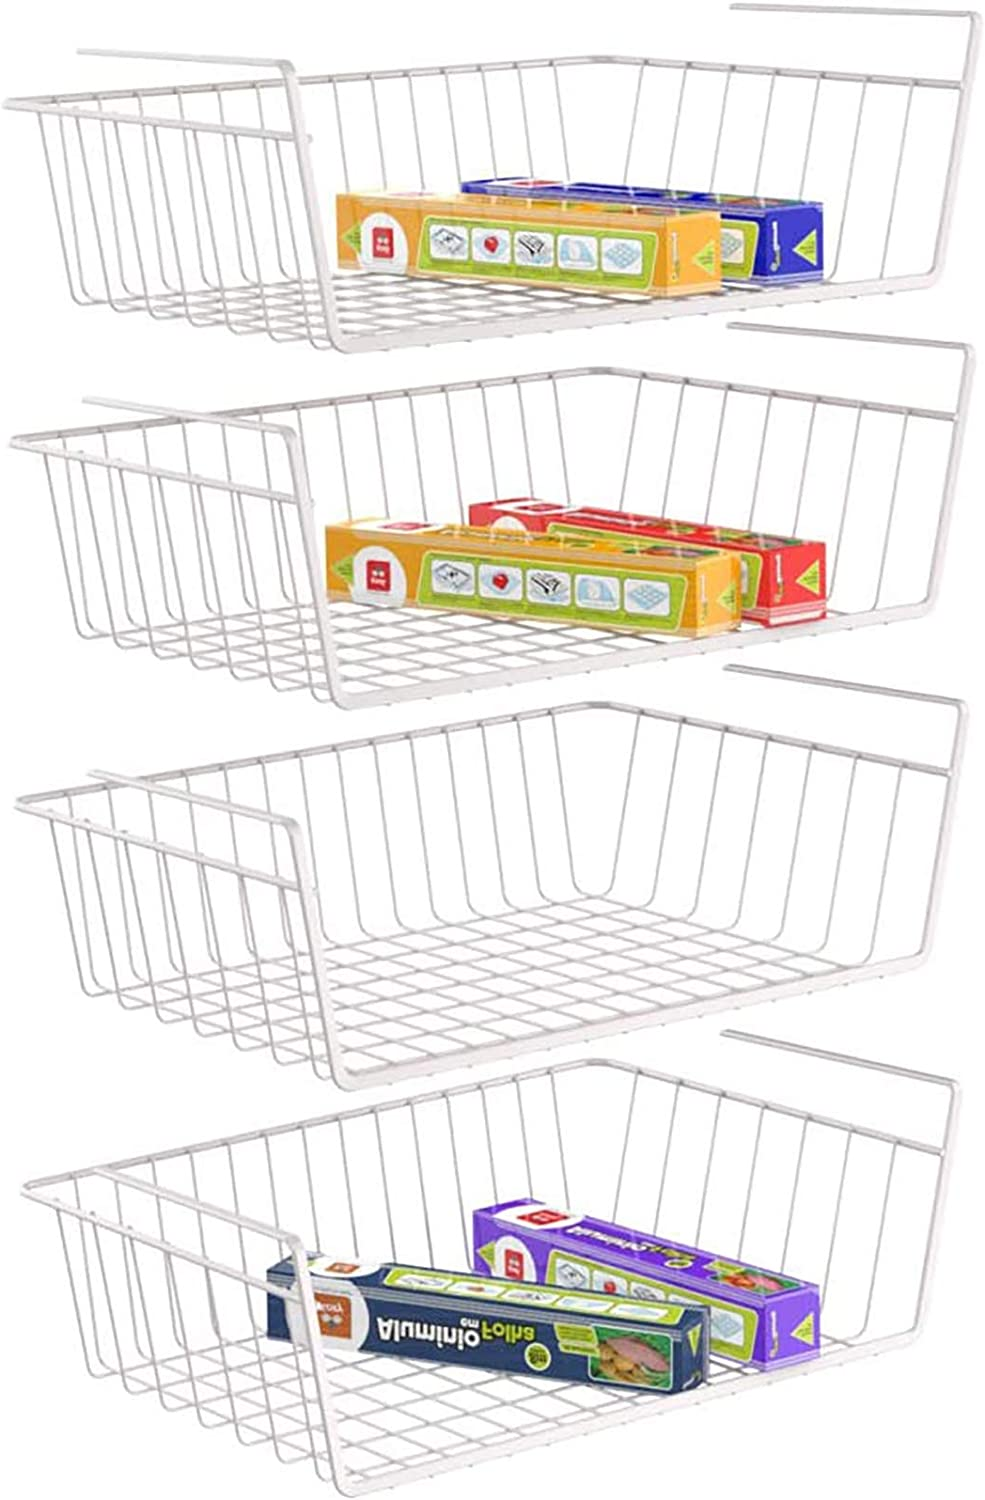 Under Shelf Basket, Pantry Organization and Storage Anti Rust White Wire Storage Basket for Pantry Cabinet Closet Desk Bookshelf Cupboard, 4 Pack